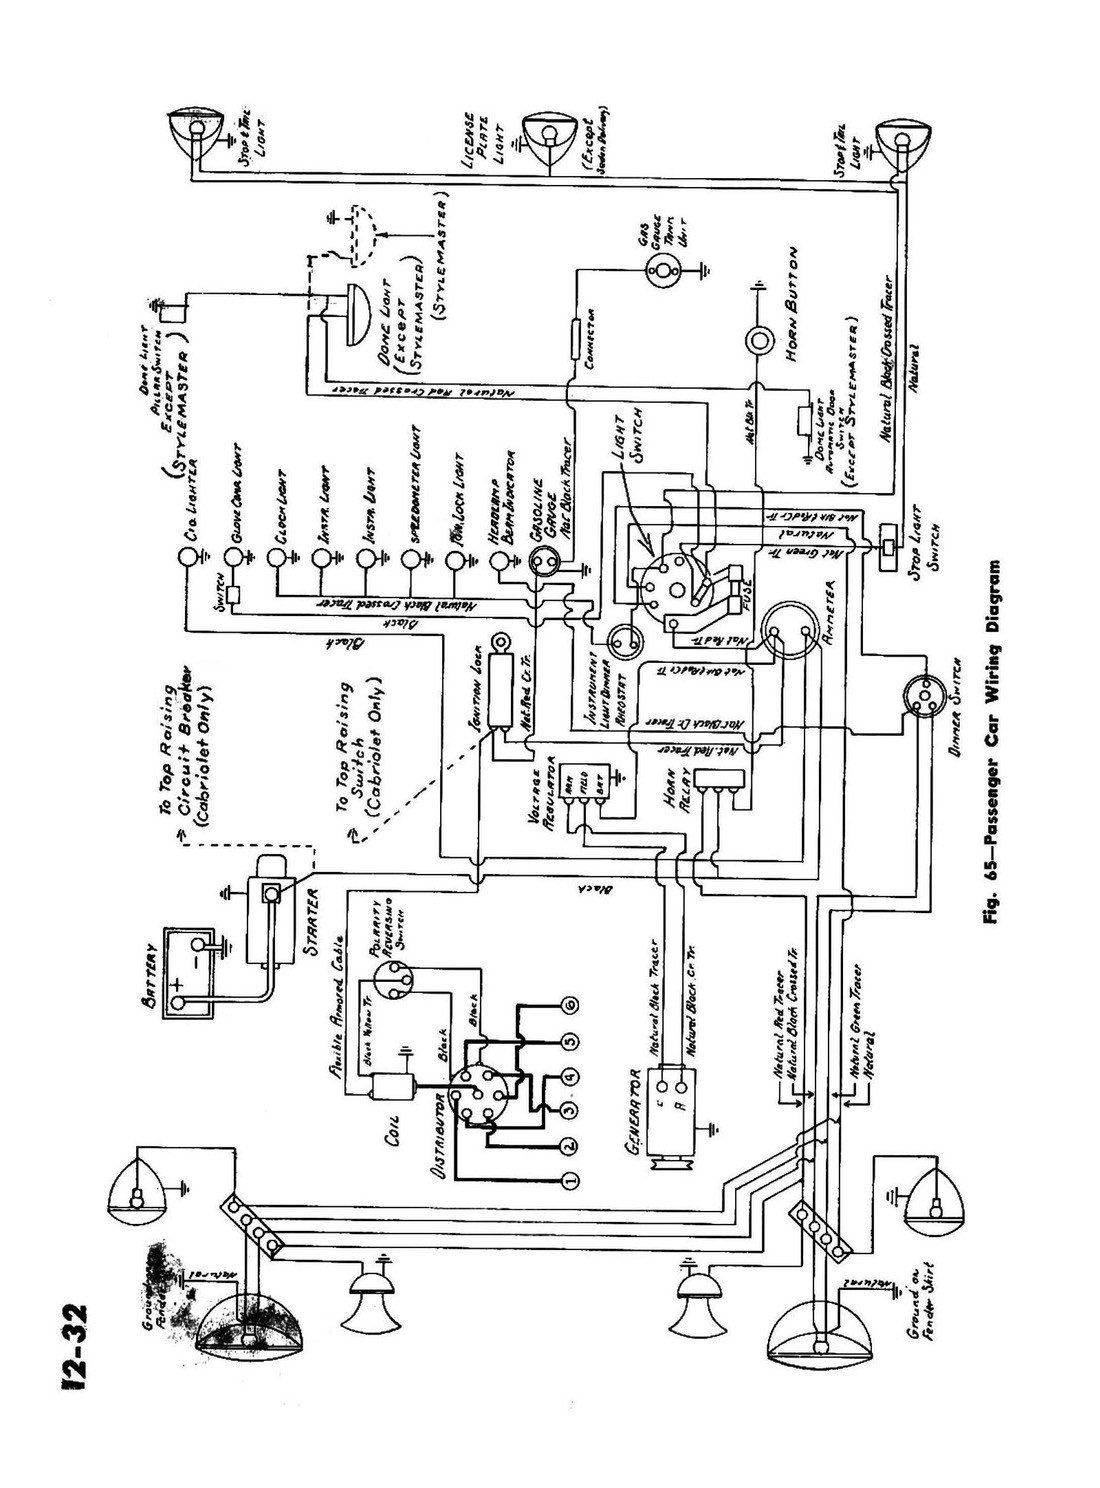 wiring diagram electric schematic circuit building fancy auto pertaining to auto electrical schematic [ 1100 x 1488 Pixel ]